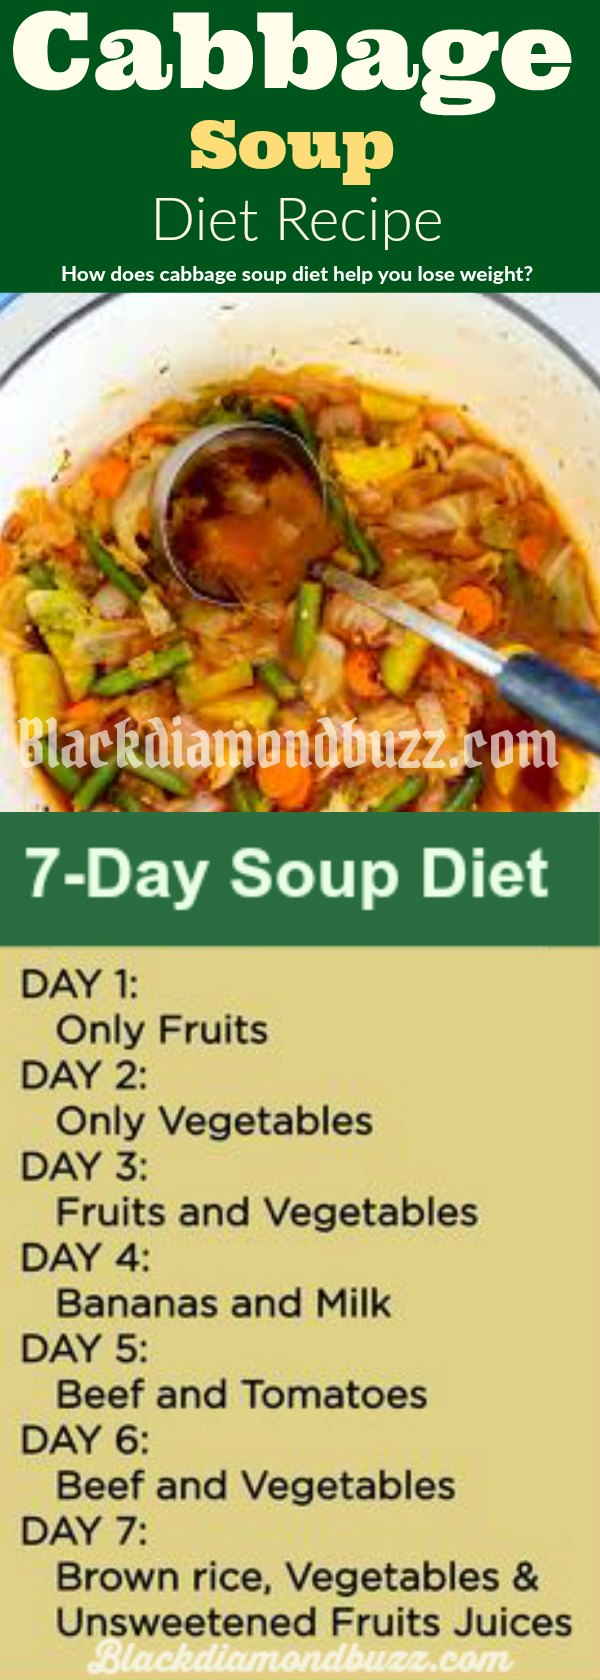 Best Cabbage Soup Diet Recipe for Weight Loss - Lose 10 lbs In 7 Days